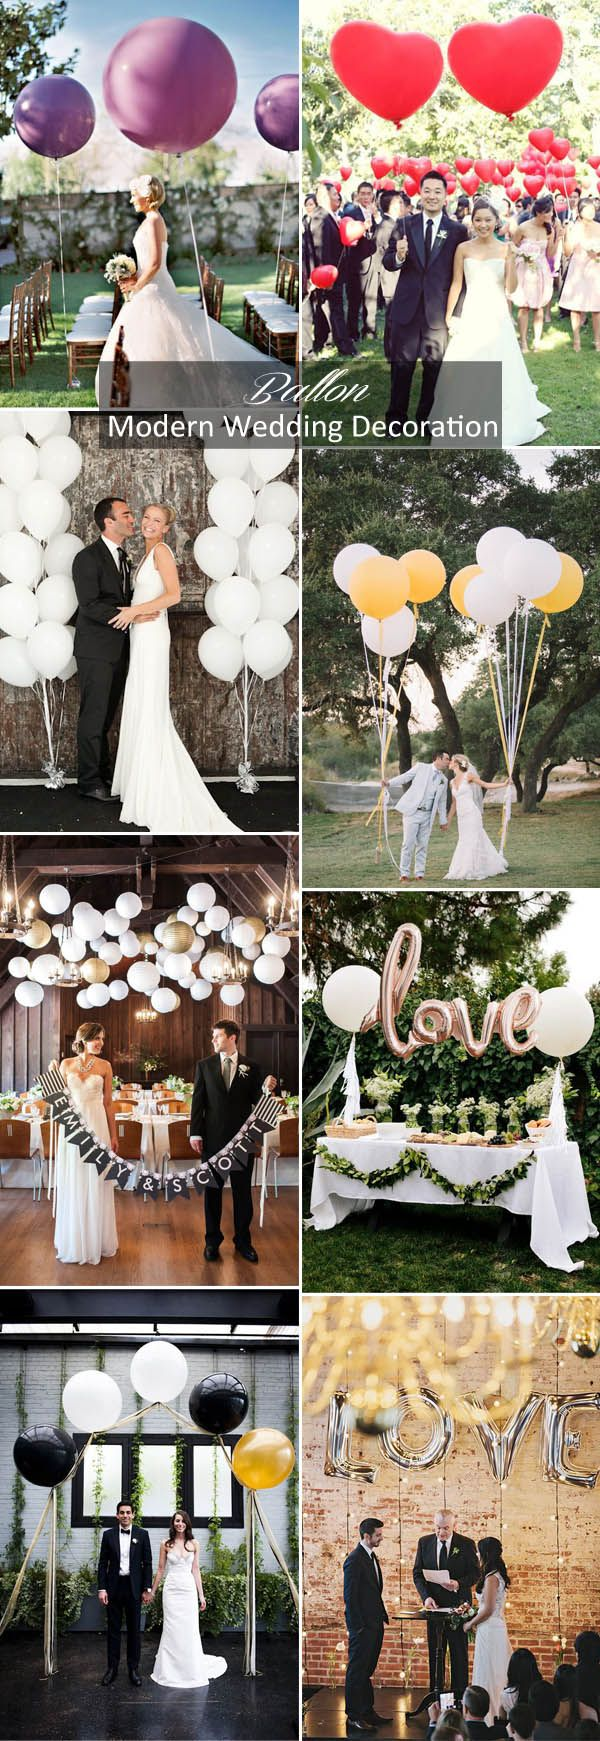 modern wedding decoration ideas with ballons